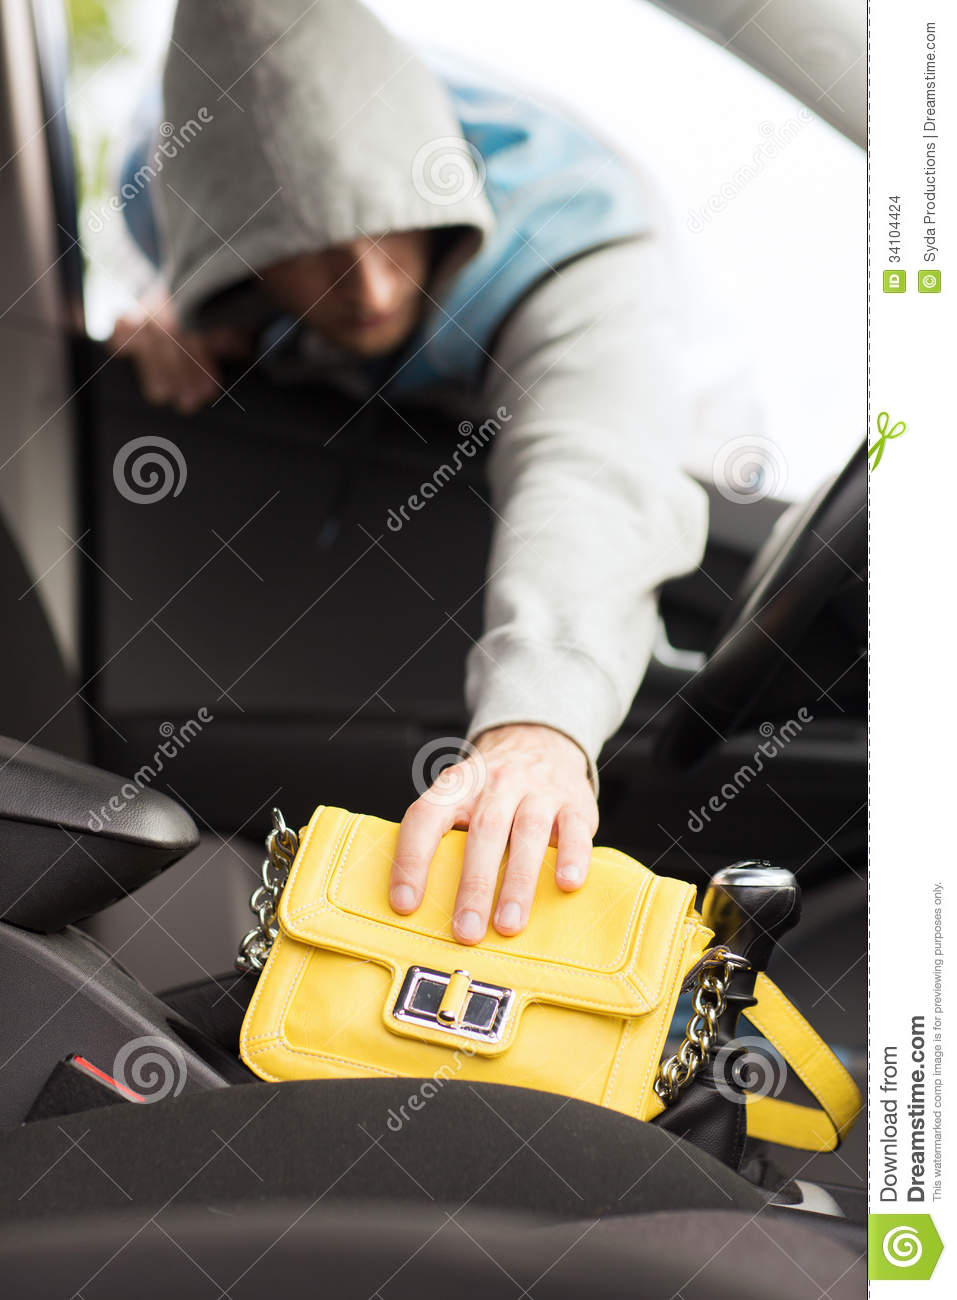 Car Insurance Prices >> Thief Stealing Bag From The Car Stock Images - Image: 34104424